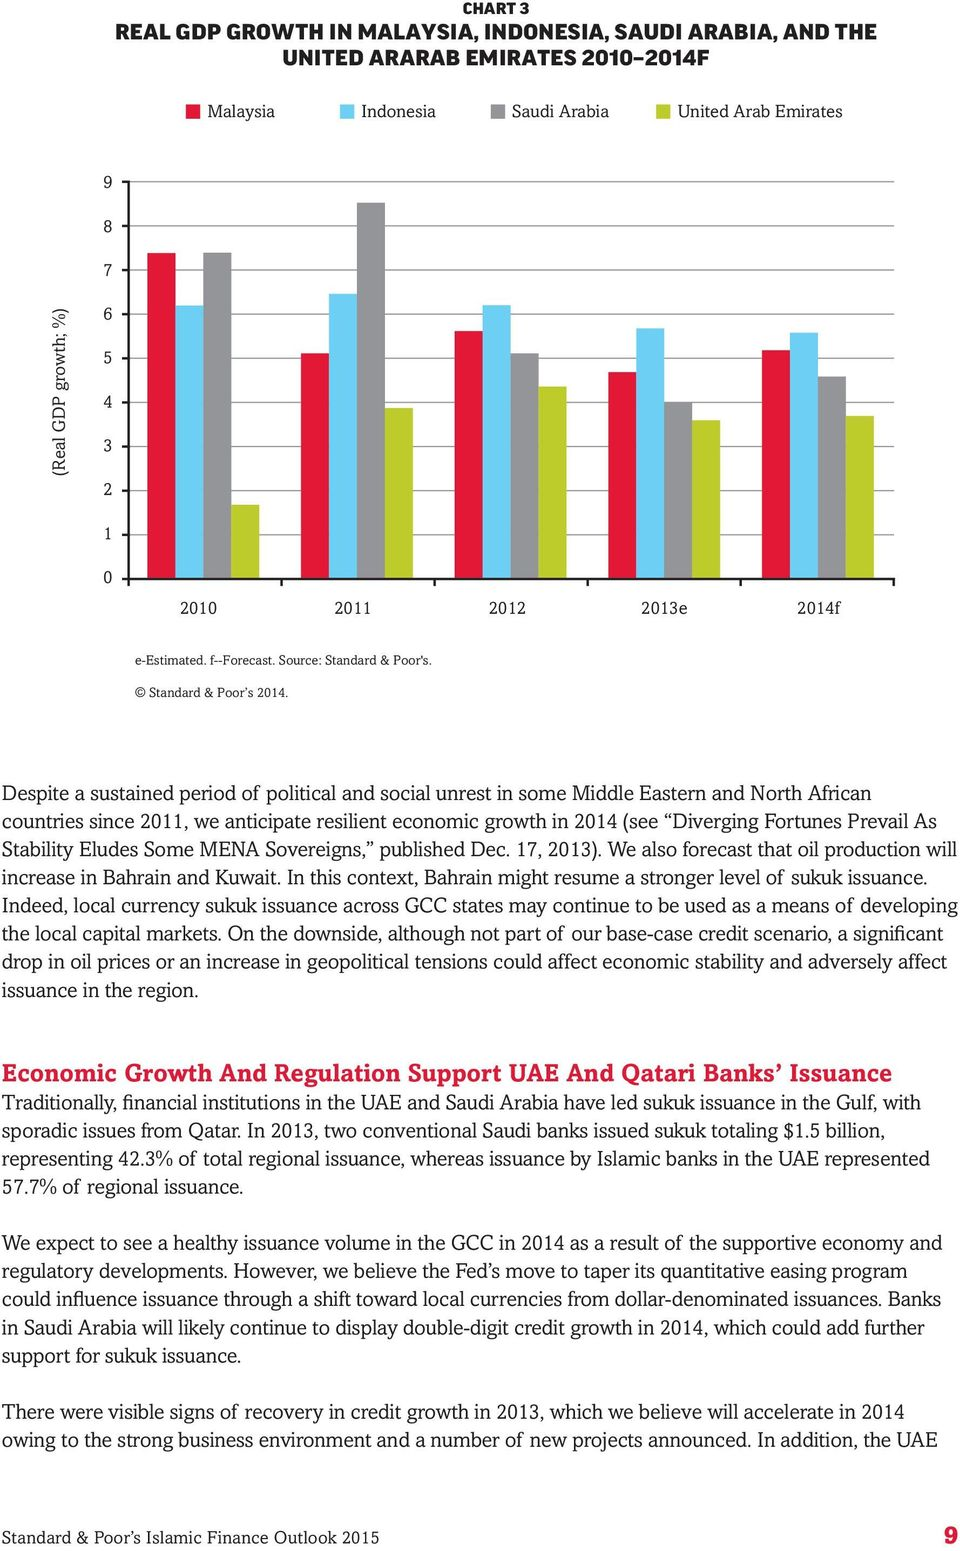 Despite a sustained period of political and social unrest in some Middle Eastern and North African countries since 2011, we anticipate resilient economic growth in 2014 (see Diverging Fortunes